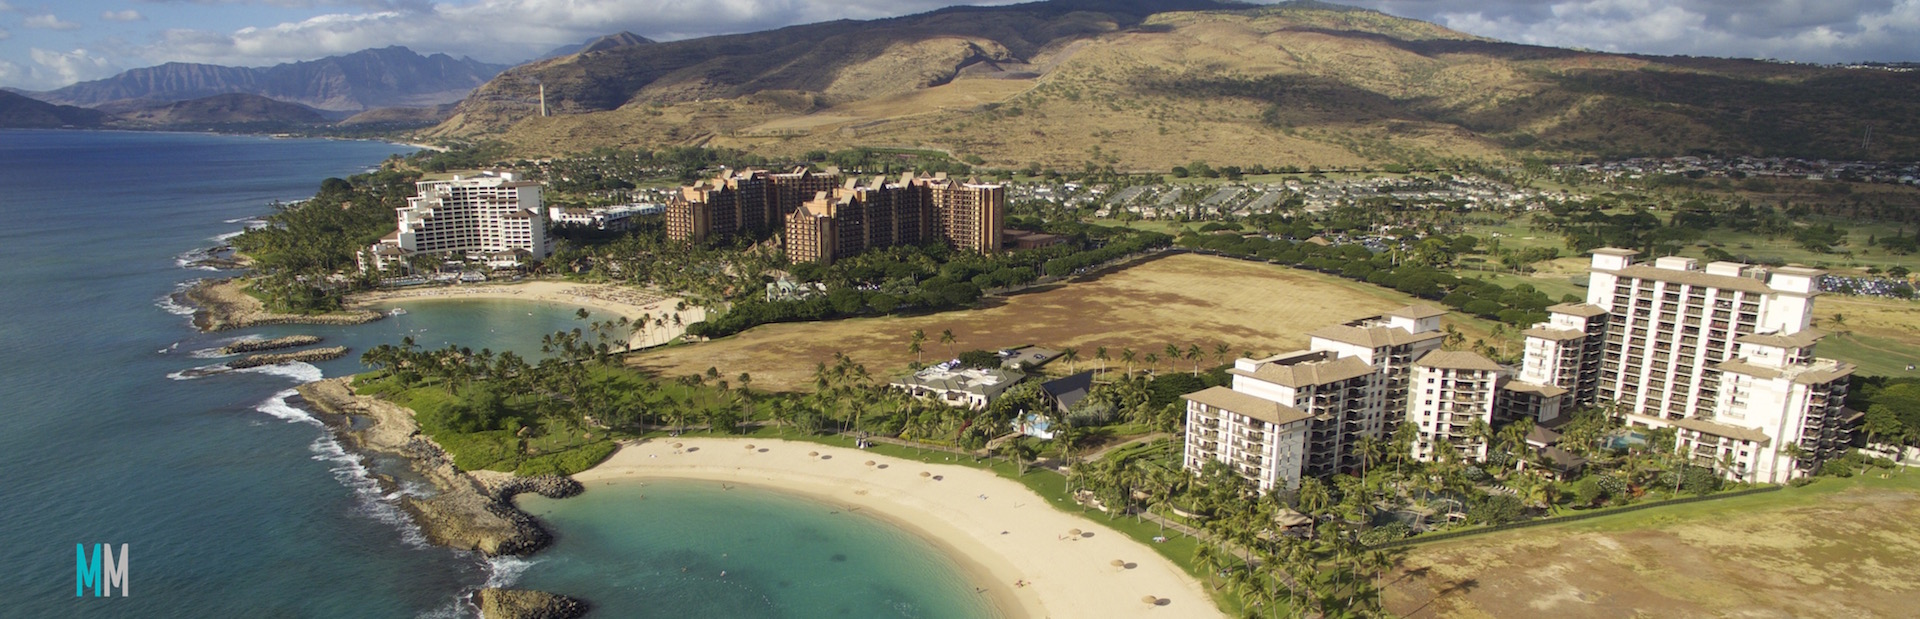 aerial view of lagoons and ko olina resort on west oahu